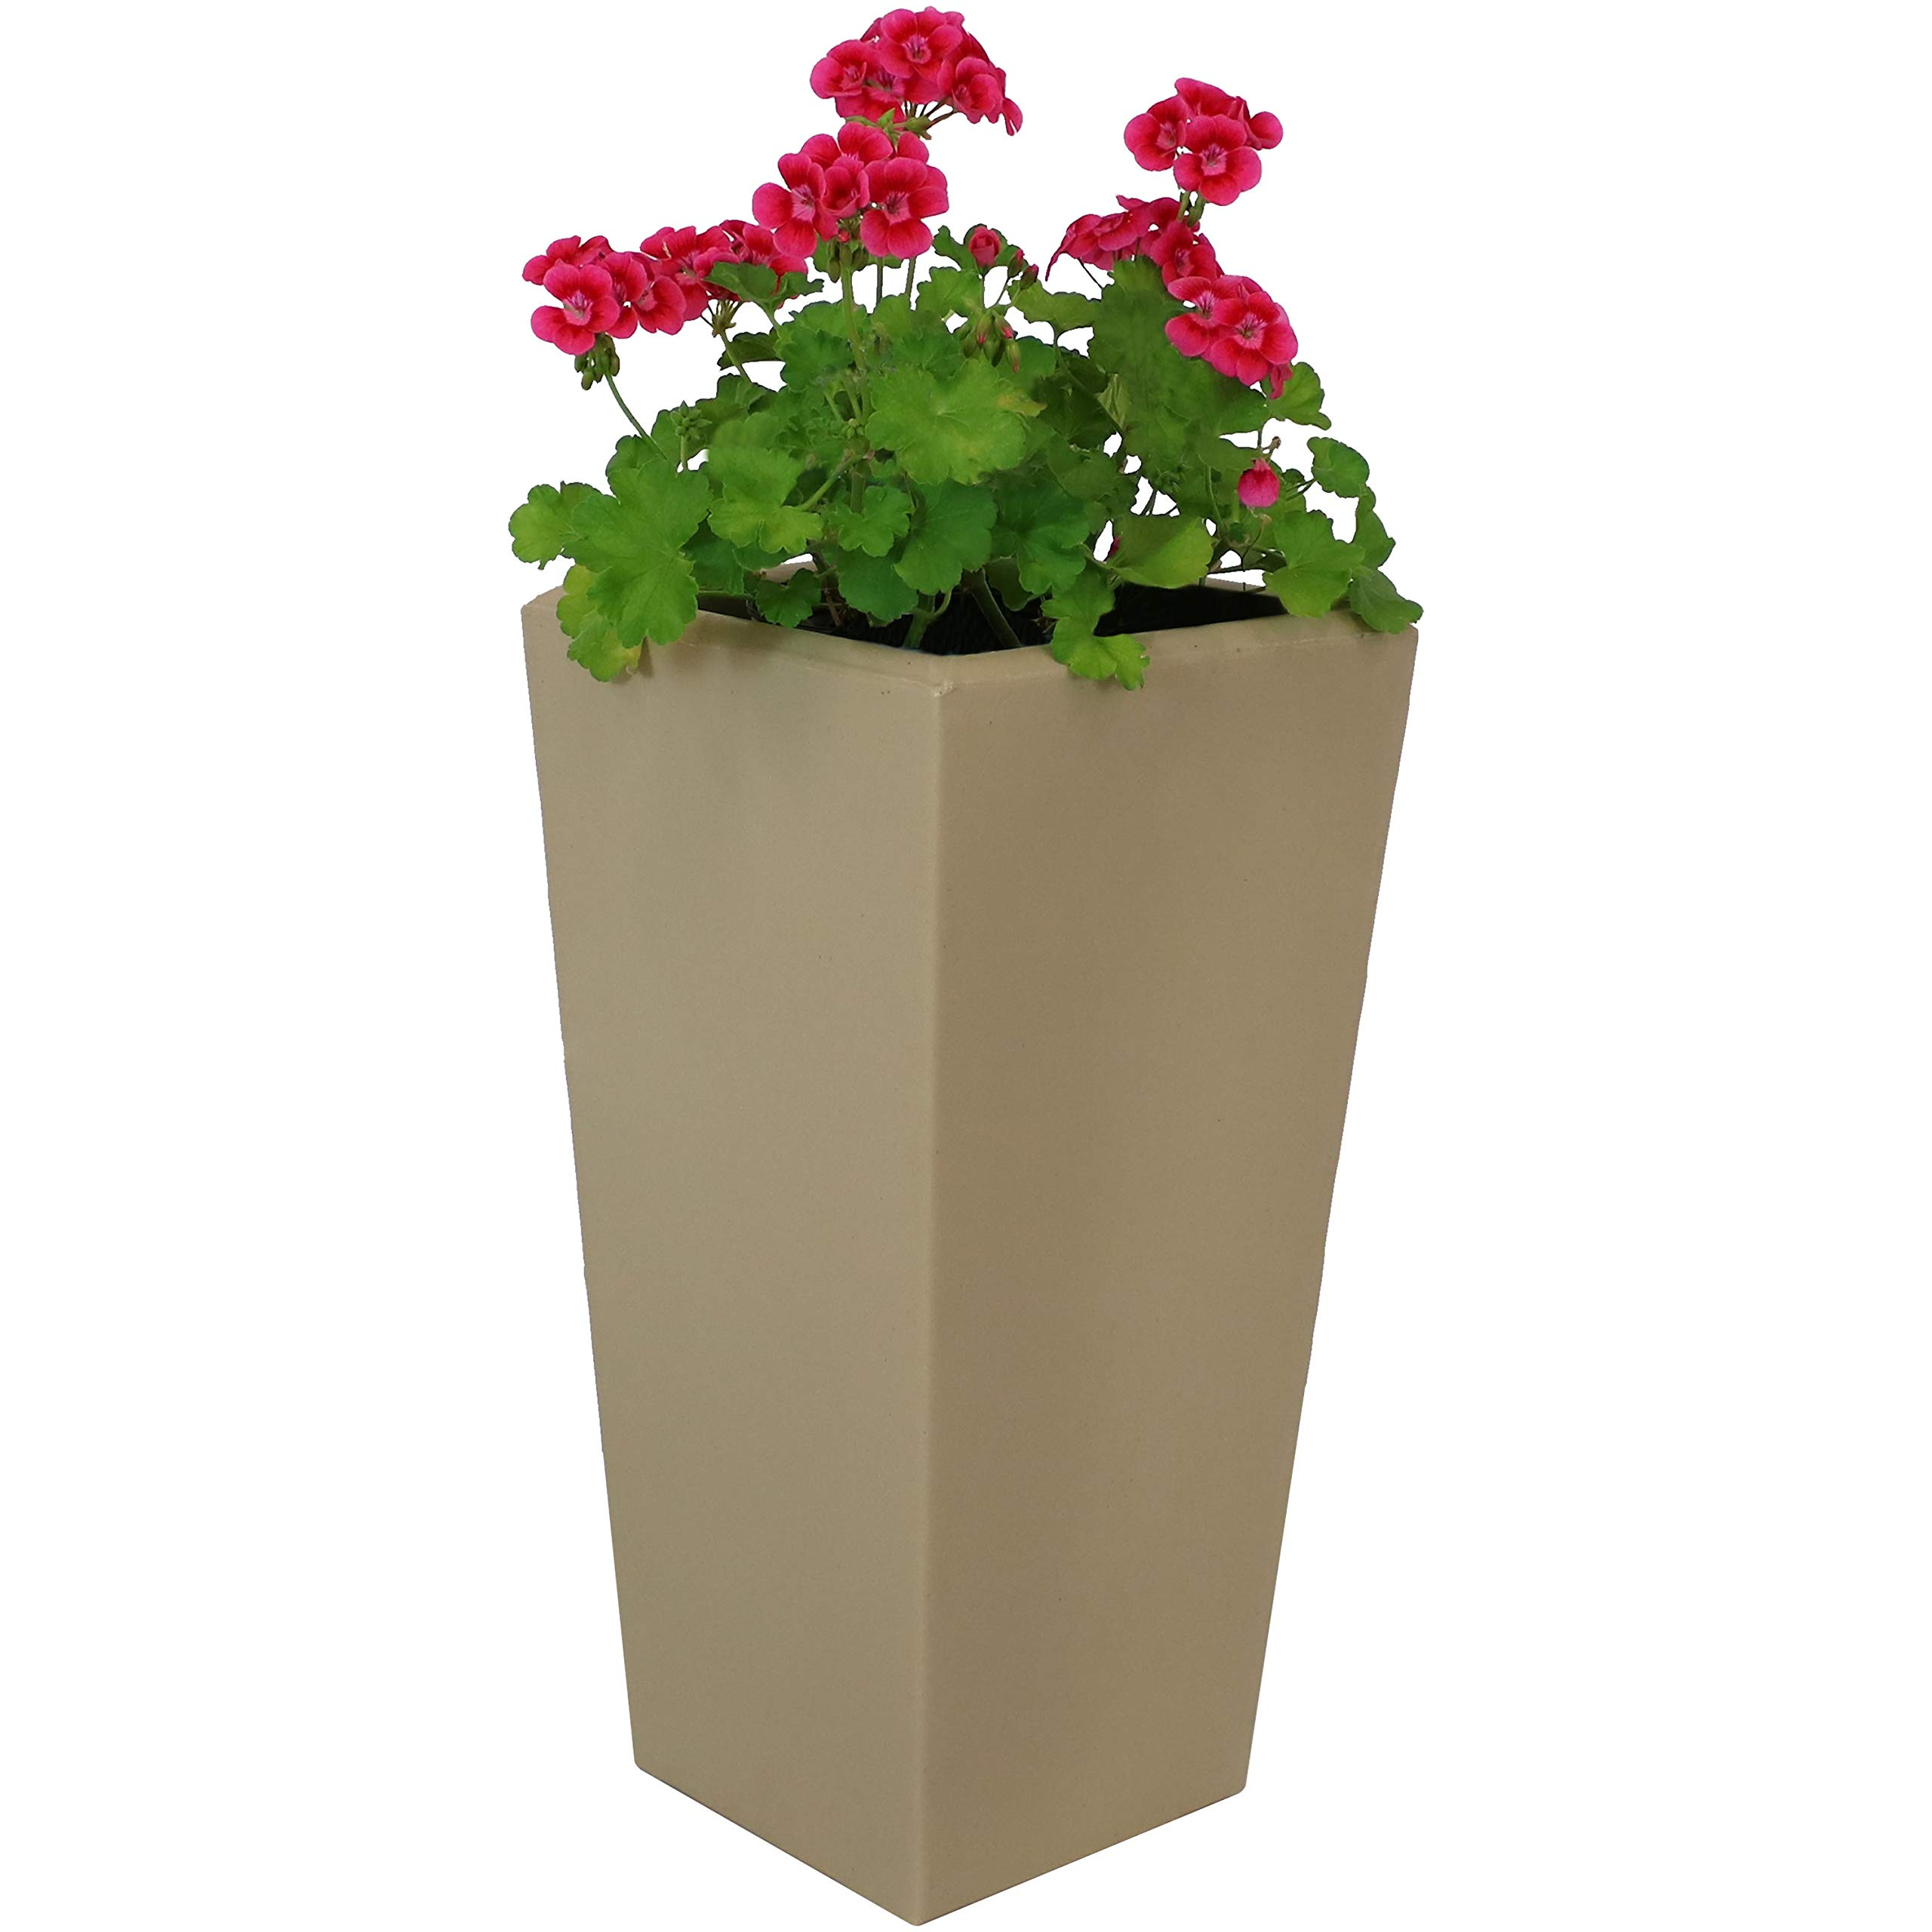 Sunnydaze Meghan Outdoor/Indoor Planter Pot, Heavy-Duty Double-Walled Polyresin with UV-Resistant Desert Finish, Single, 11-Inch